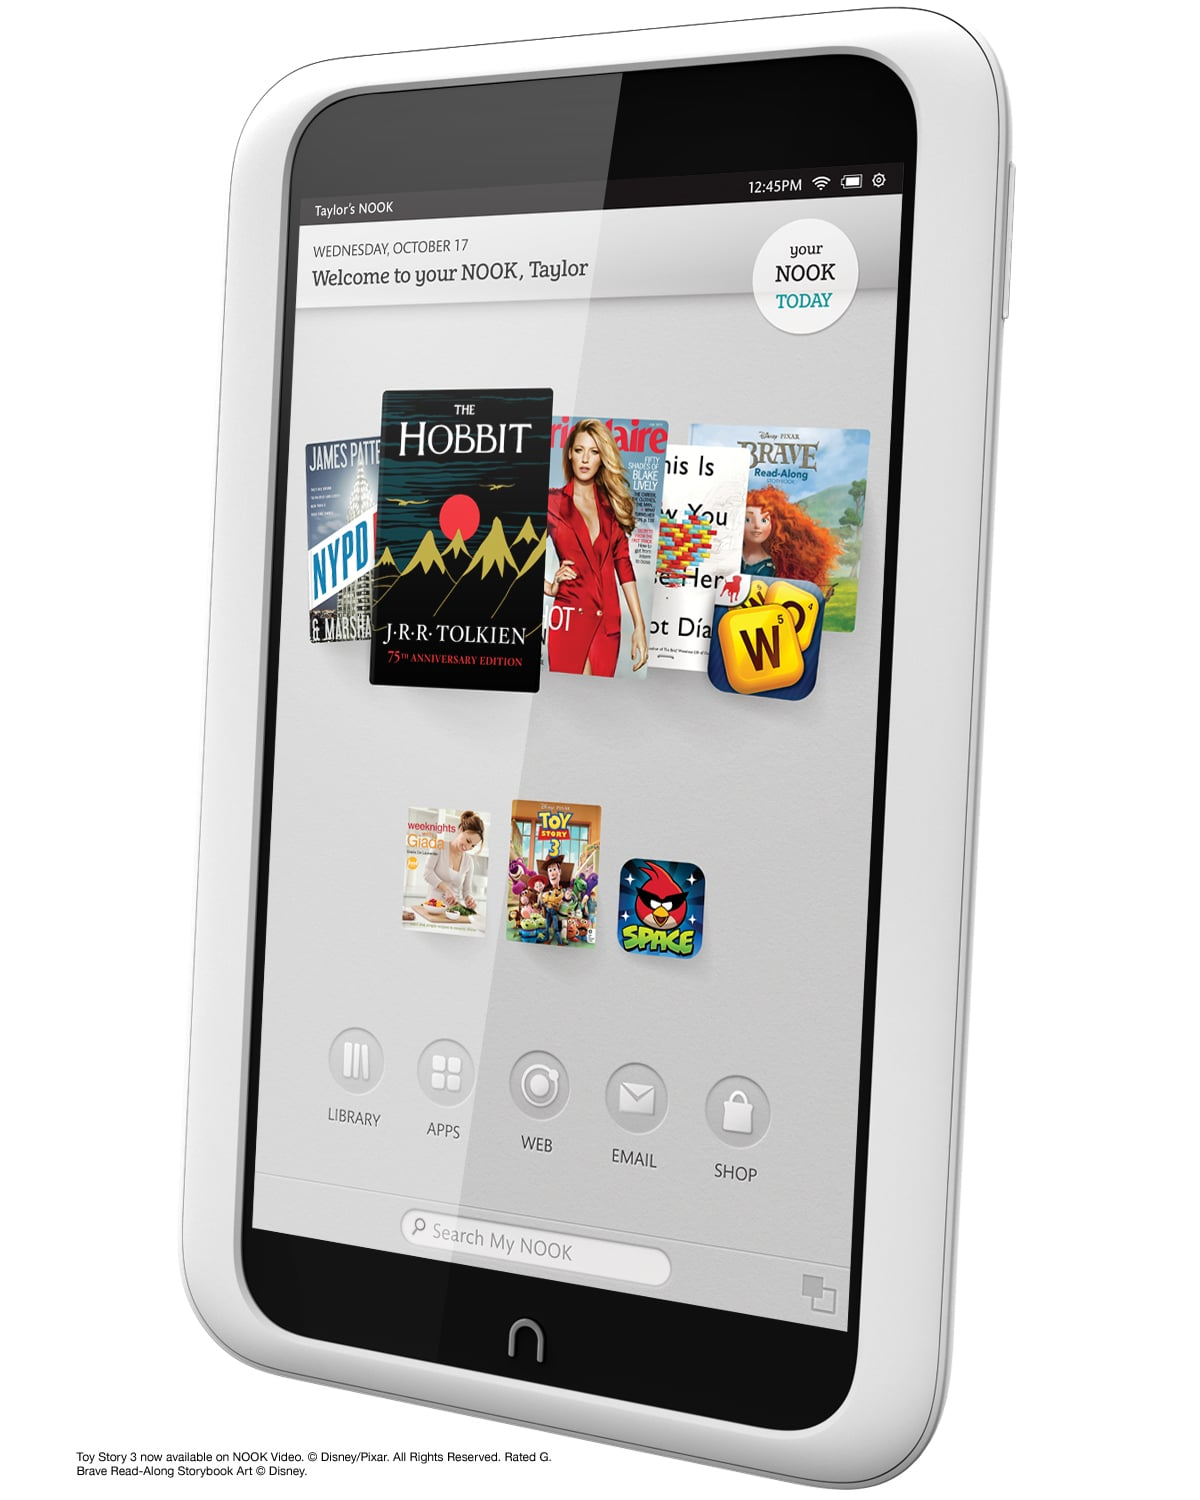 Slightly taller and thicker — The new Nook HD is 7.65 x 5 x 0.43 inches (HWD), versus the Kindle Fire's 7.6 x 5.4 x 0.4 inches.